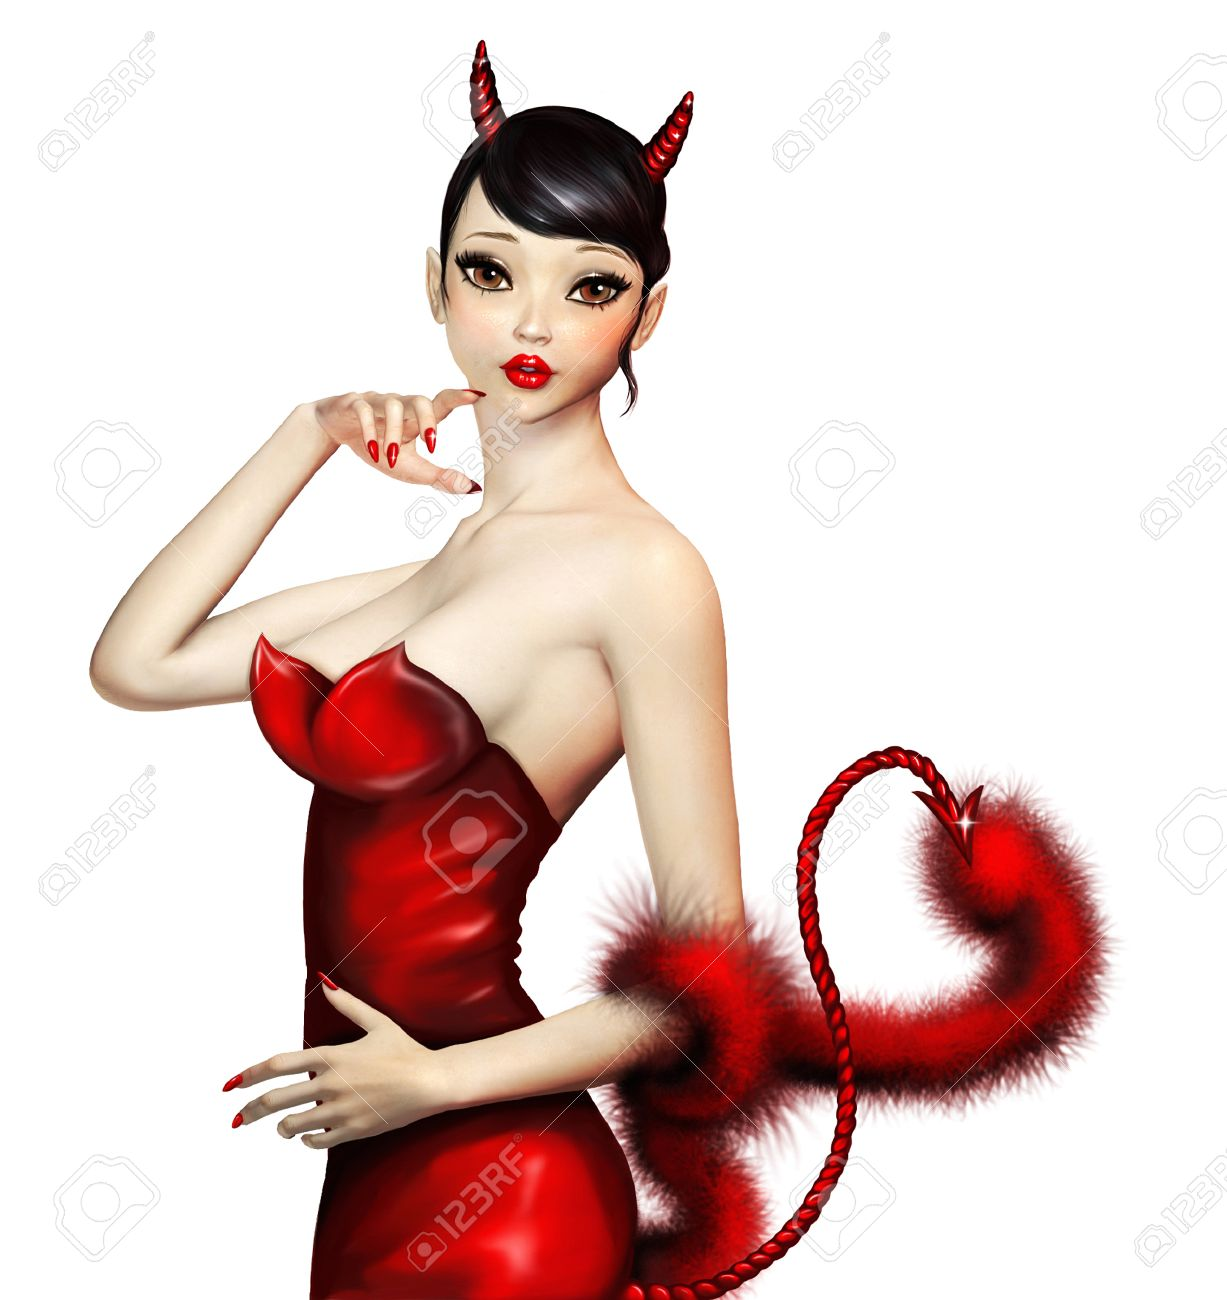 Sexy Devil Girl In Red Costume With Big Eyes Stock Photo, Picture ...